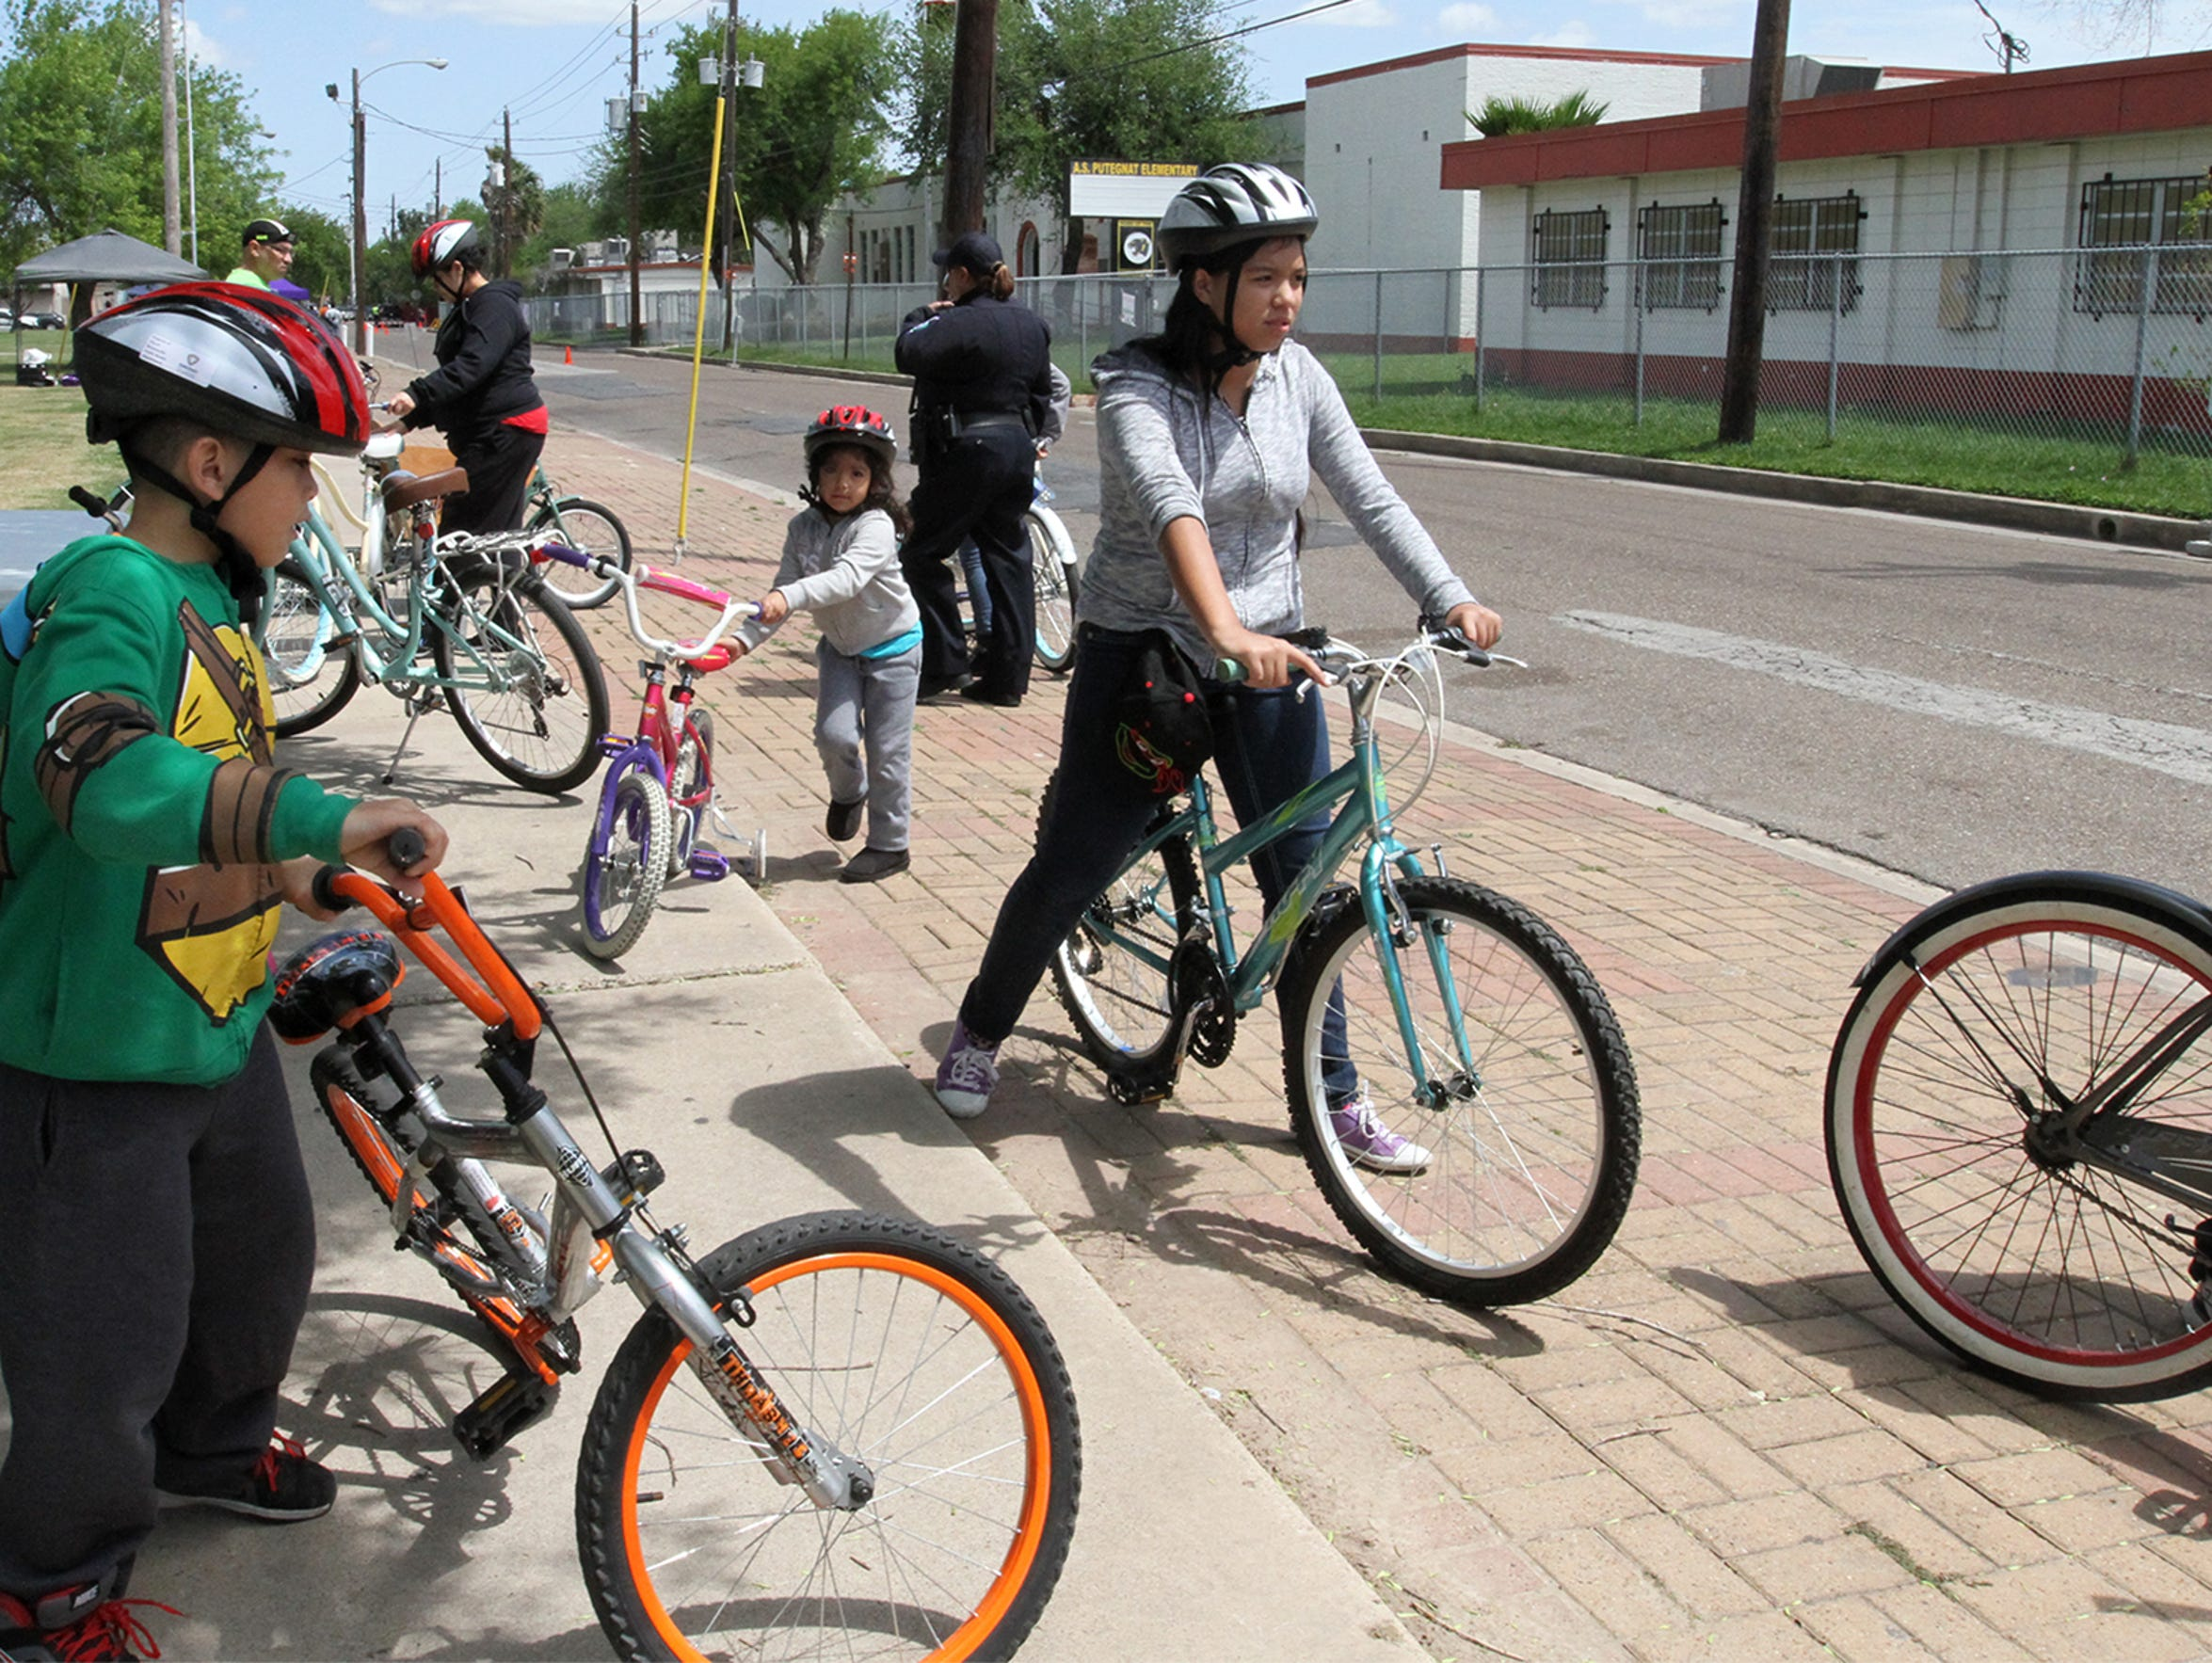 Parents and children start out on a bike ride along